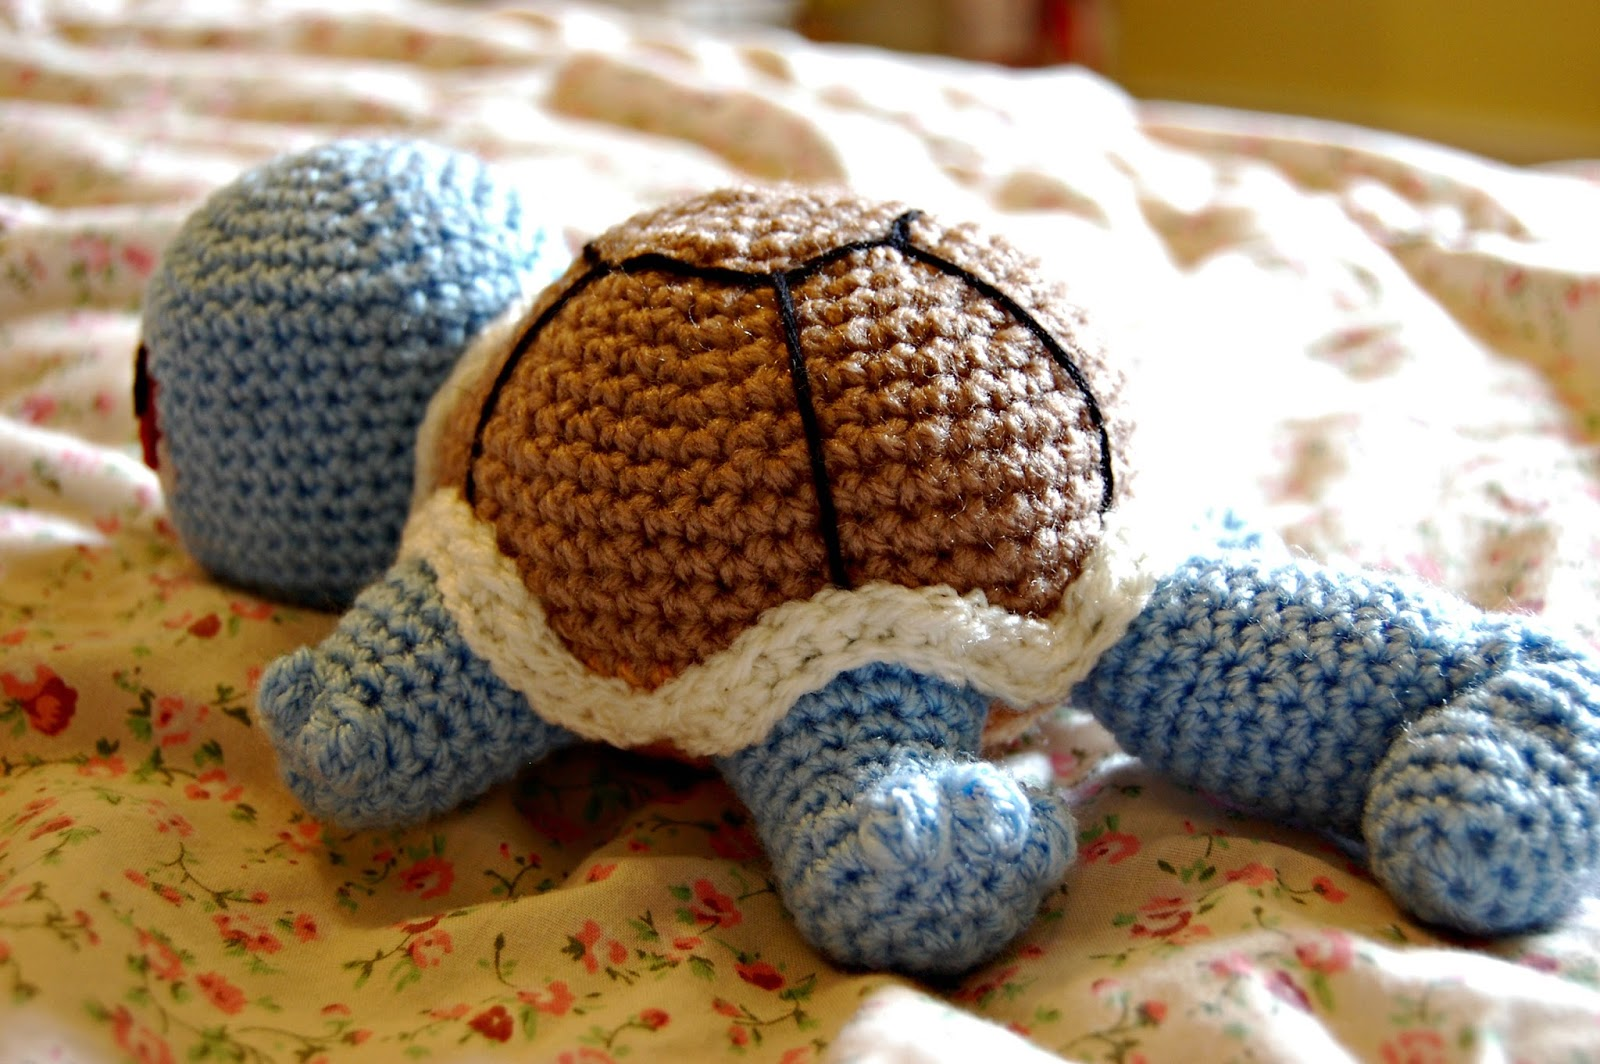 the geeky knitter: fo: crochet baby squirtle